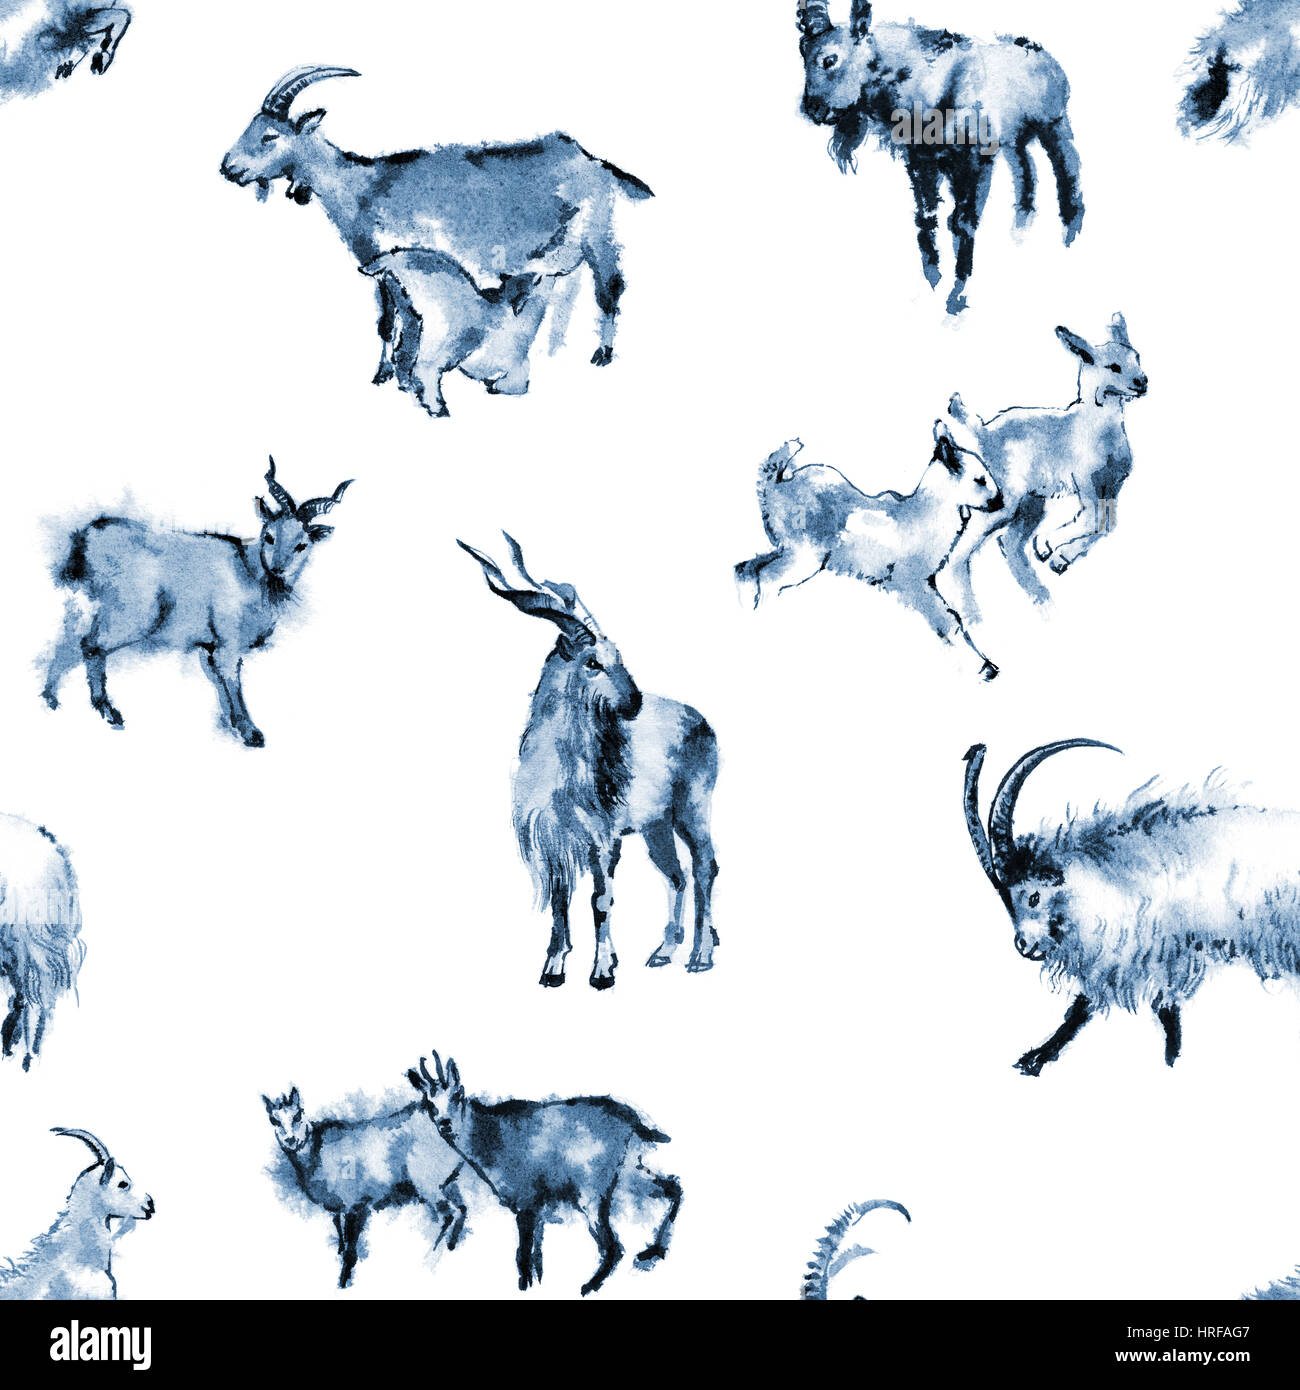 Seamless background texture with 8 images of goats, oriental ink painting, blue tone, isolated on white background. - Stock Image